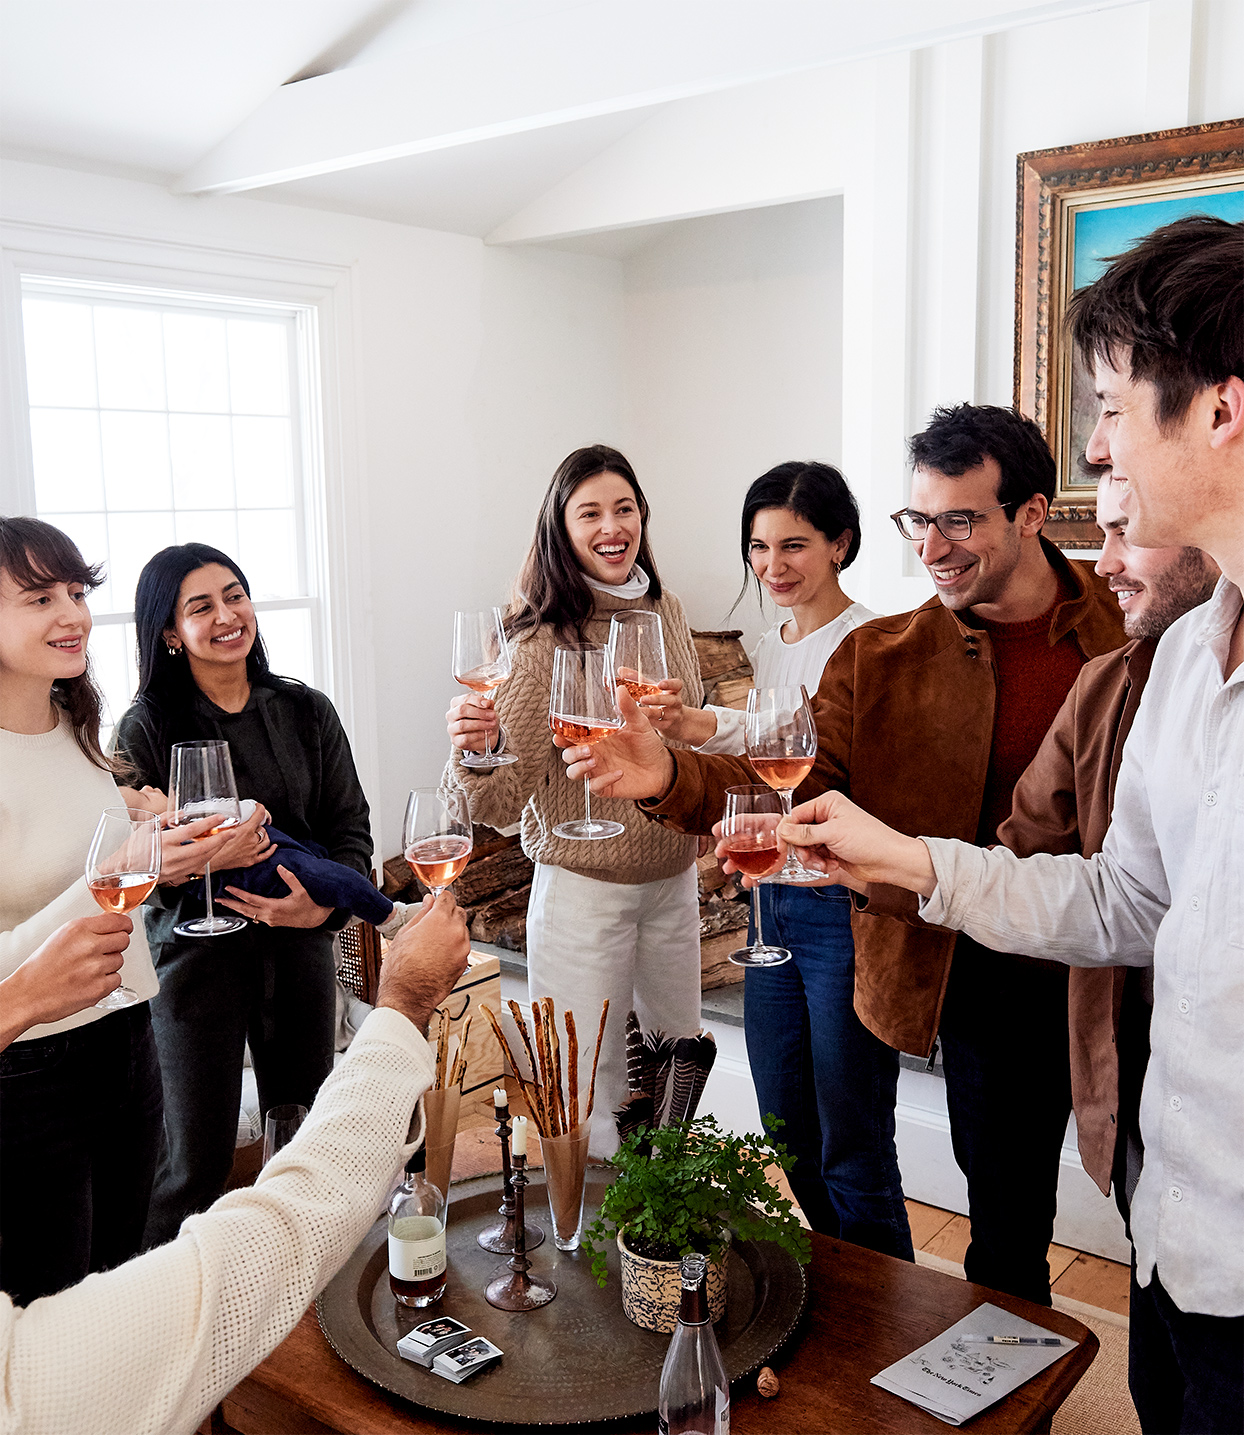 friends toasting in celebration